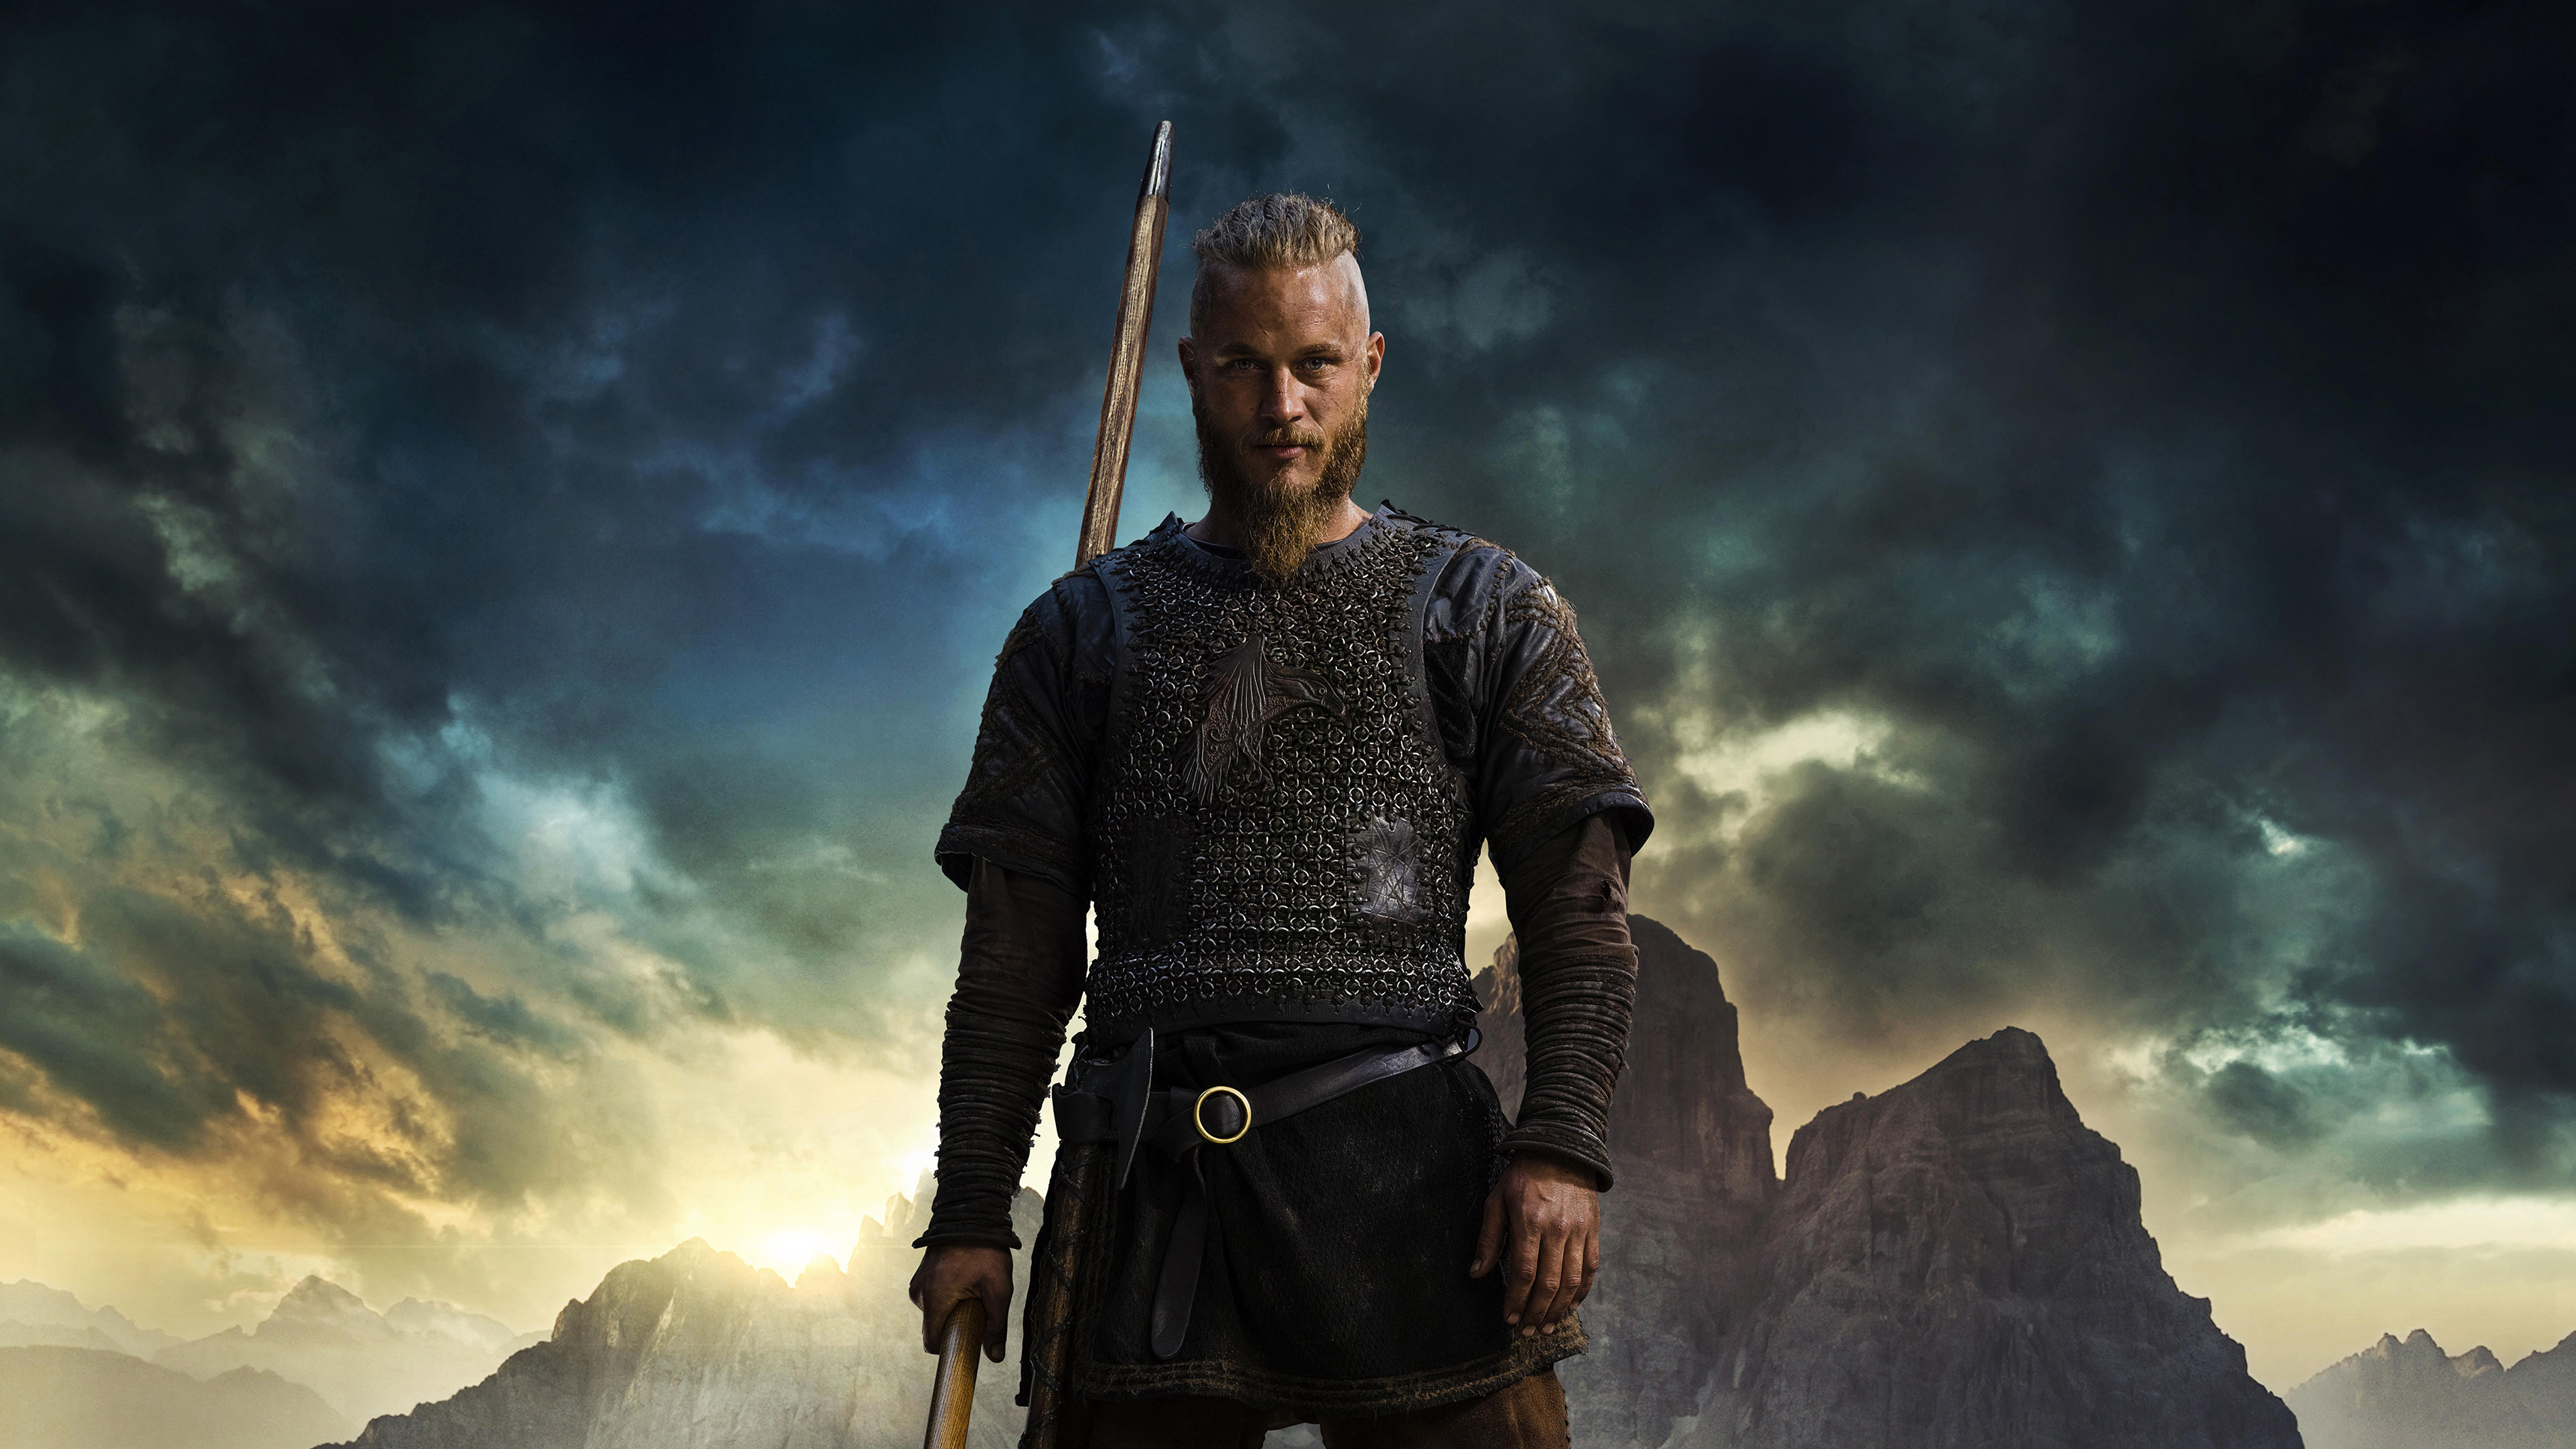 Vikings Ragnar 4k Hd Tv Shows 4k Wallpapers Images